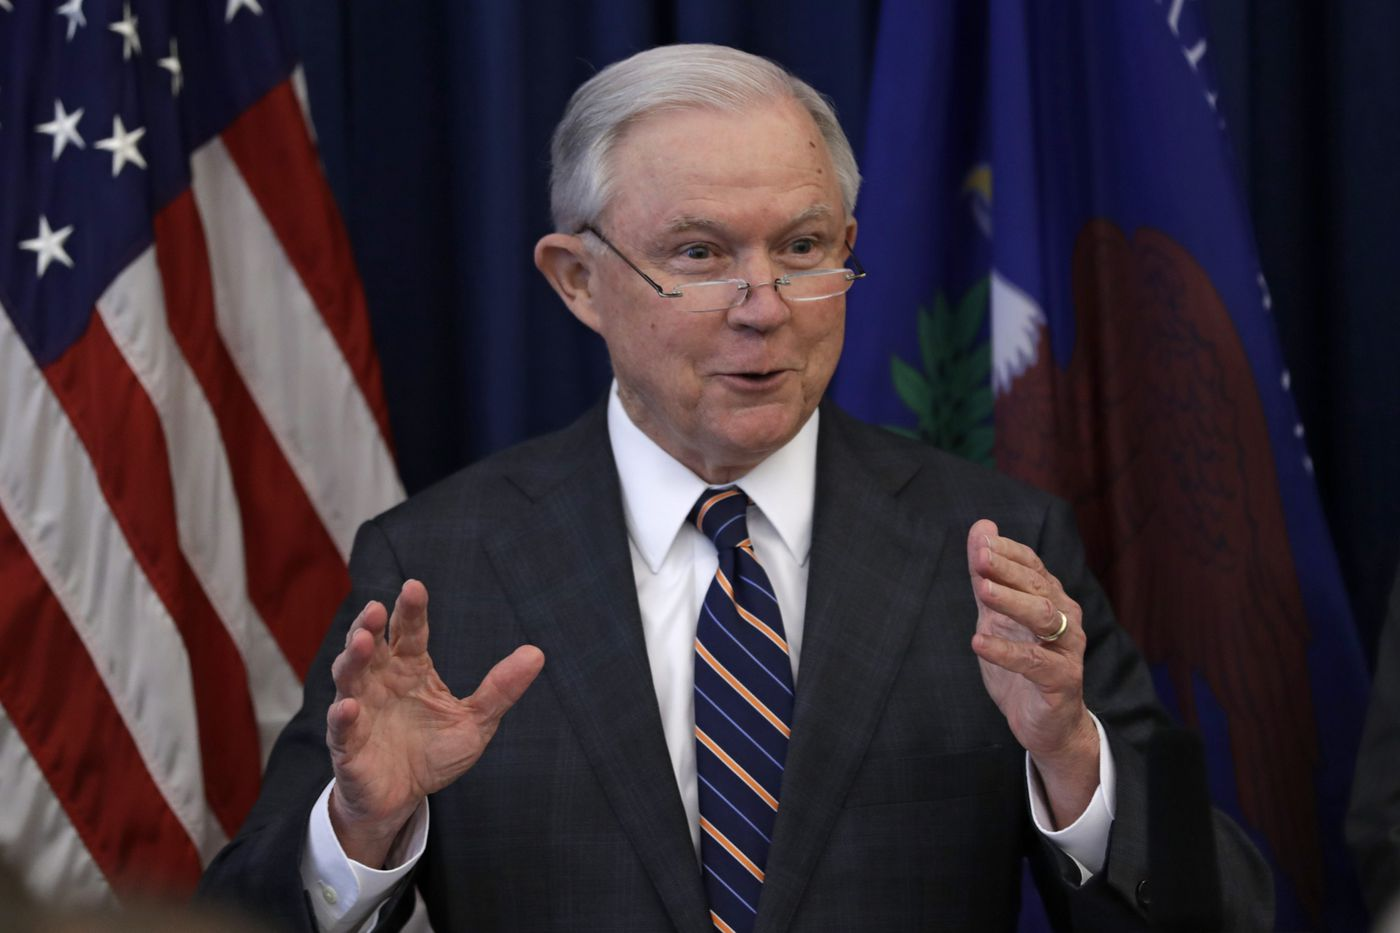 Jeff Sessions safe as Attorney General until midterms, Donald Trump says